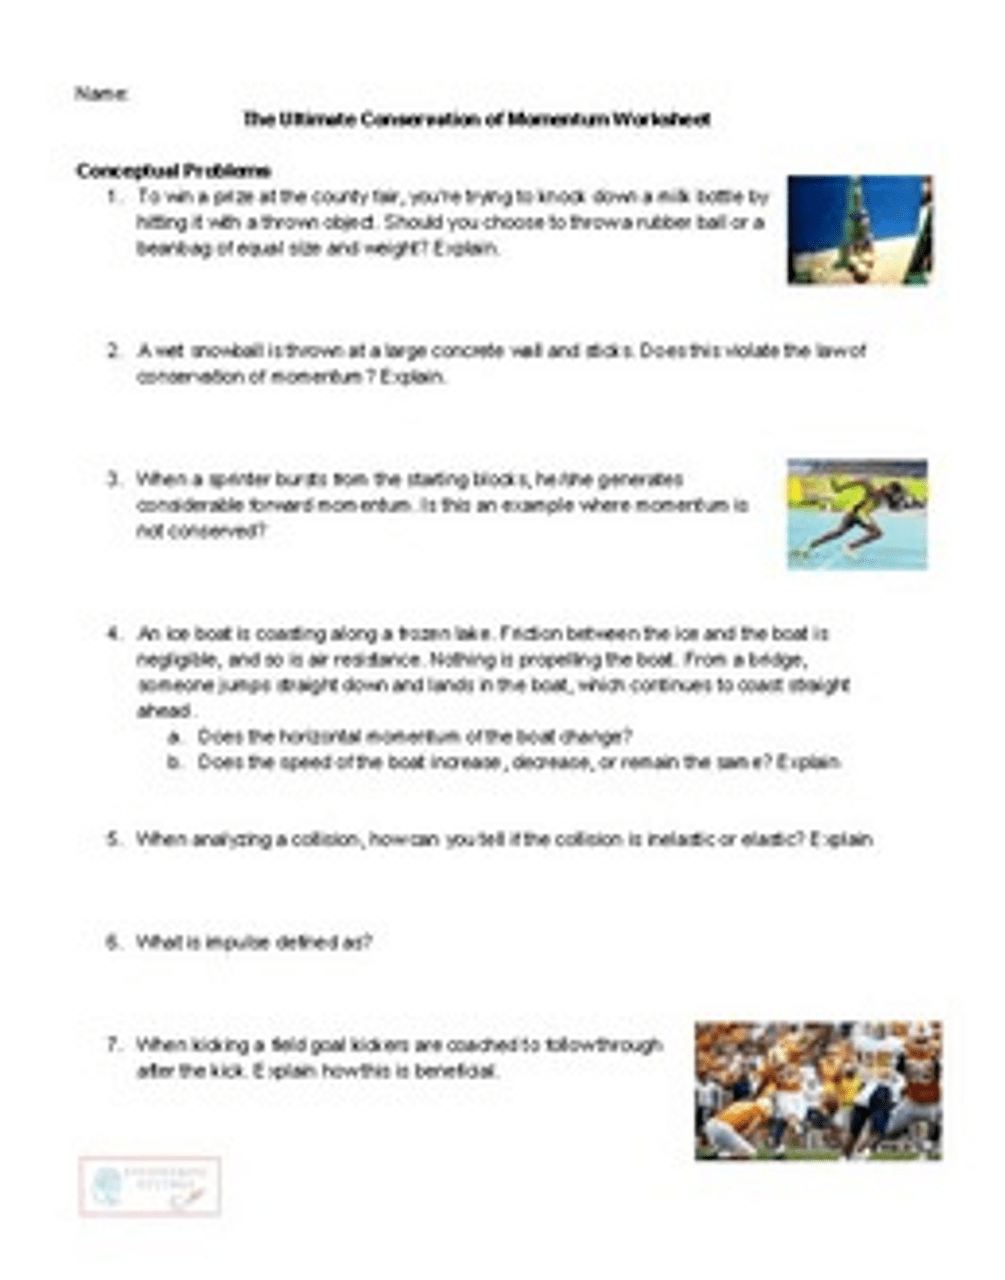 hight resolution of The Ultimate Conservation of Momentum Worksheet - Amped Up Learning